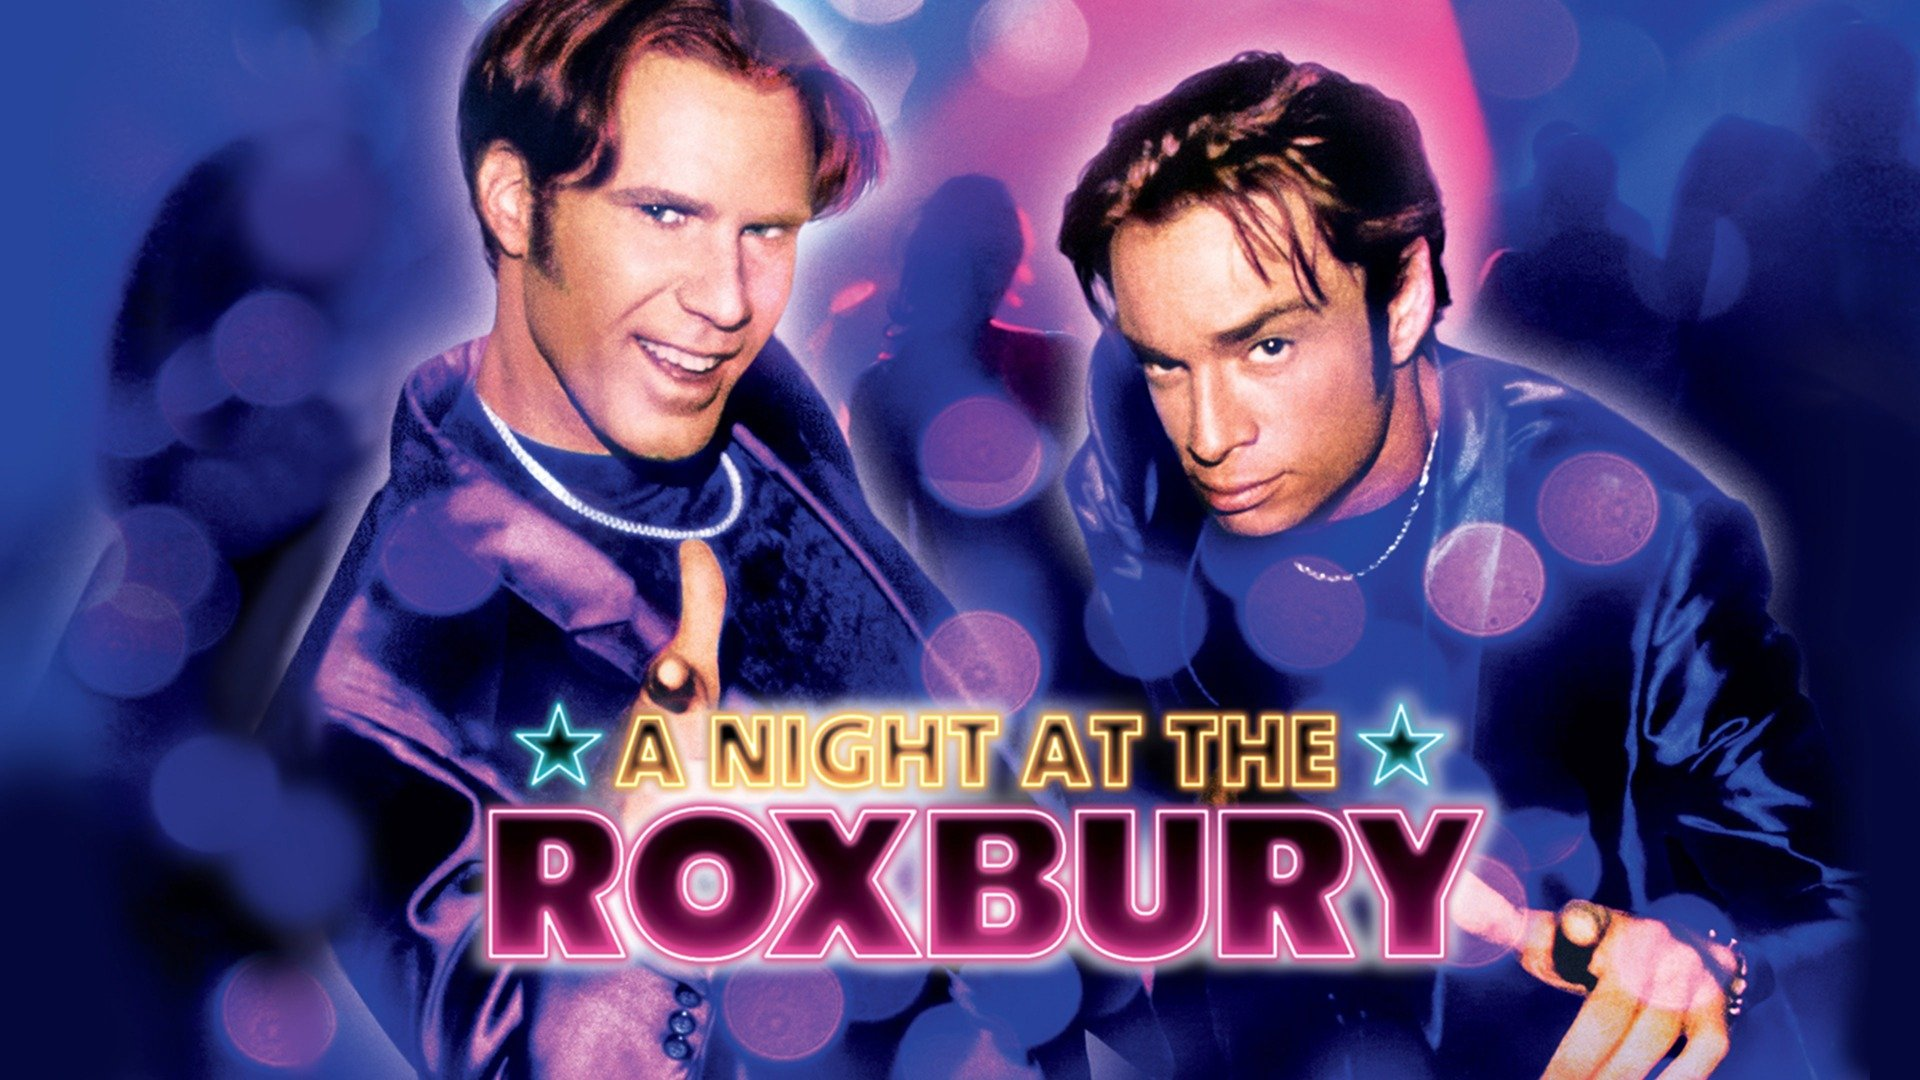 A Night at the Roxbury | MovieTickets